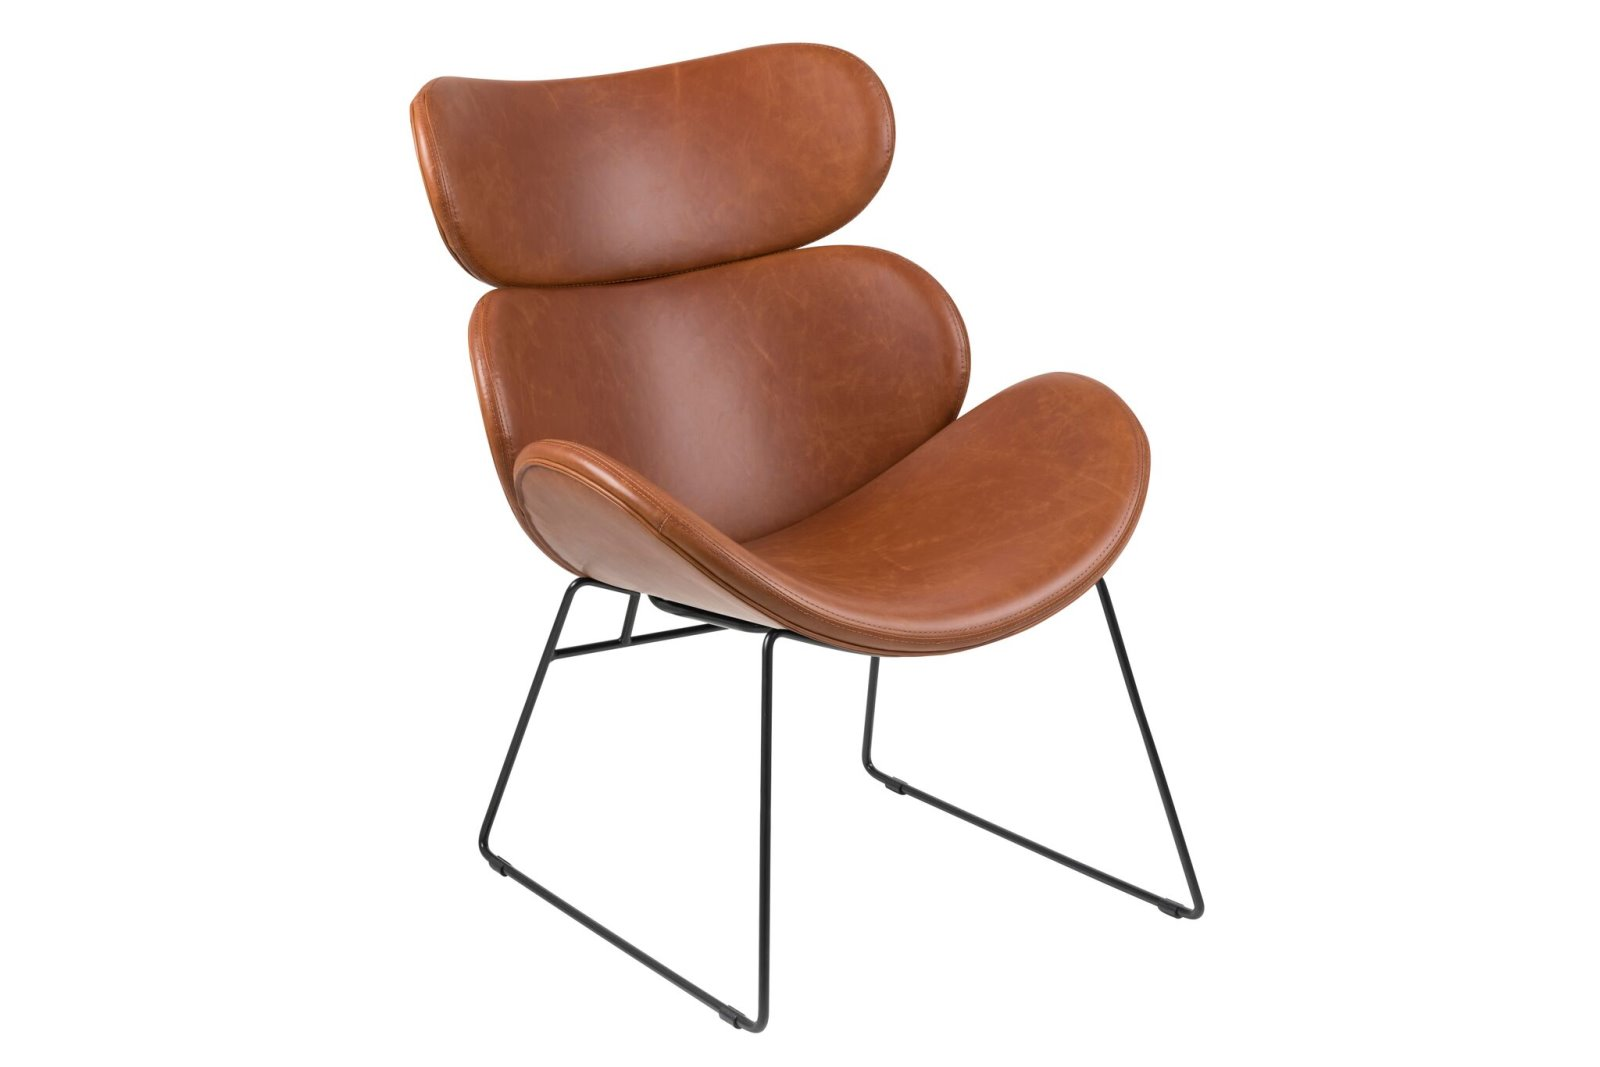 Schwinger Sessel Pkline Sessel Cazy In Braun Relaxsessel Loungesessel Clubsessel